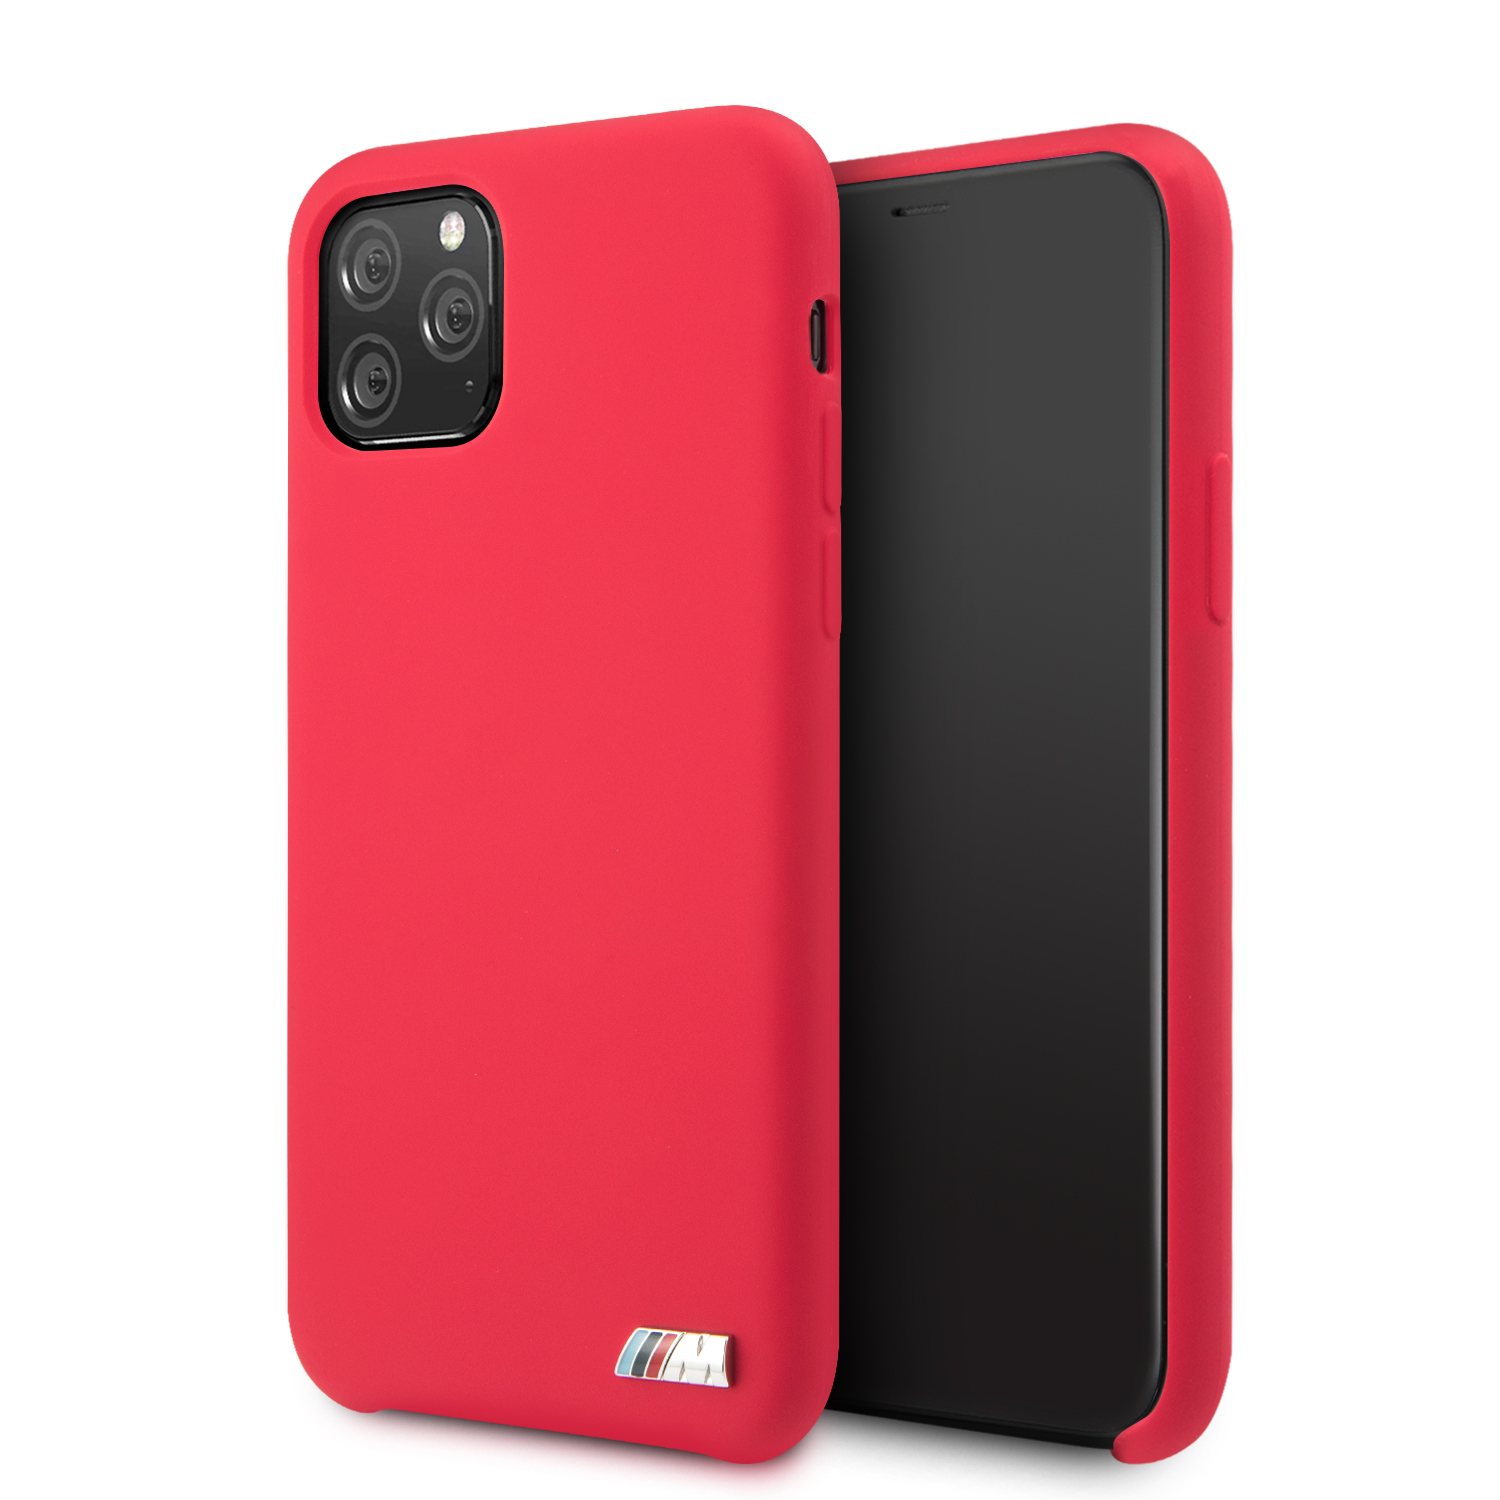 BBMW M Silikonový kryt BMHCN58MSILRE pro Apple iPhone 11 Pro red